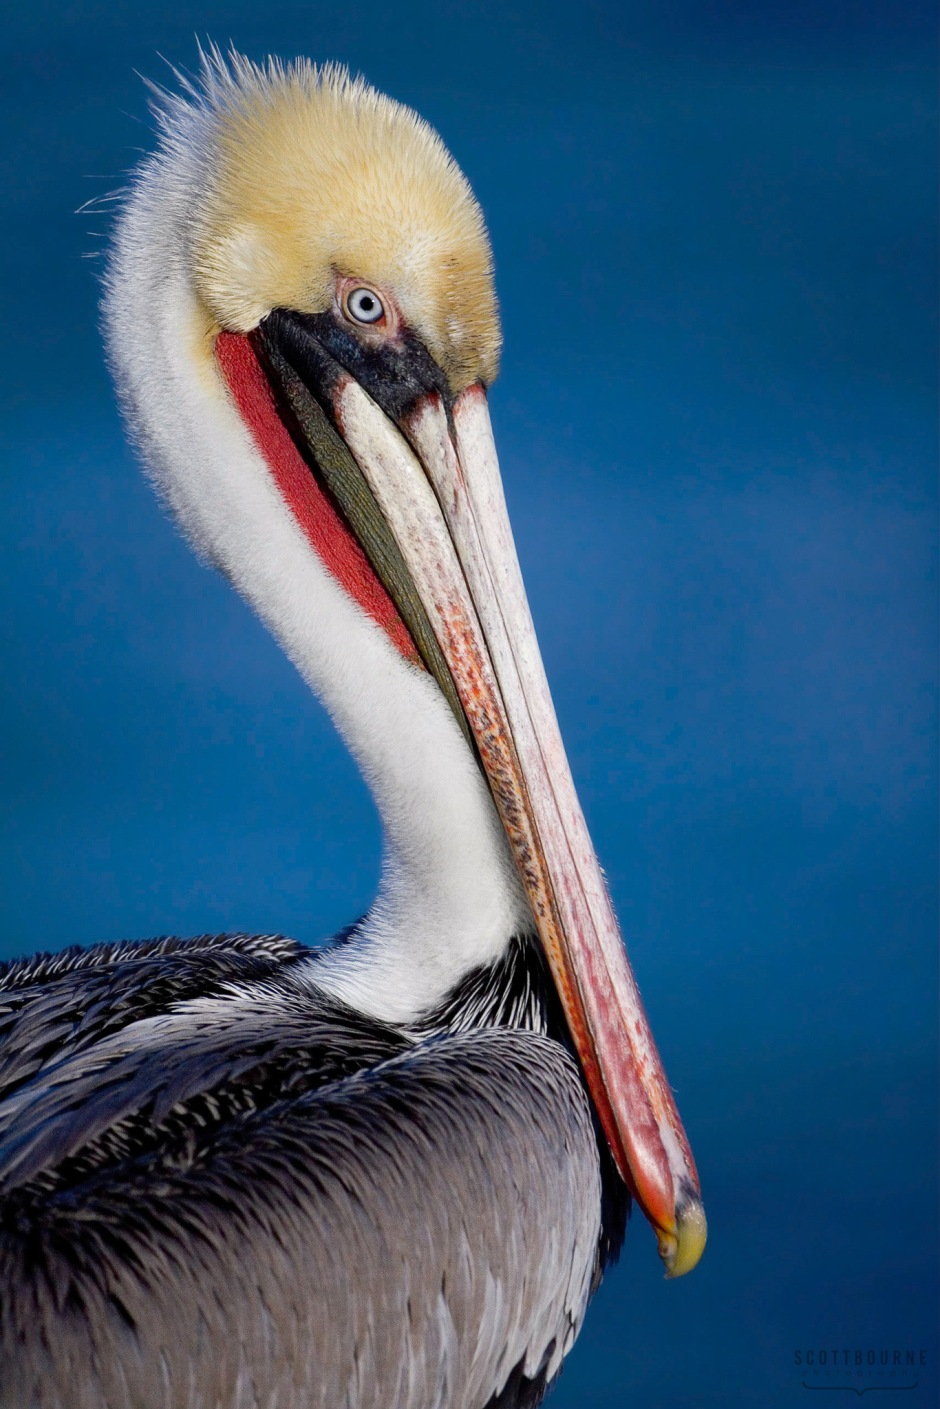 Pelican photograph by Scott Bourne